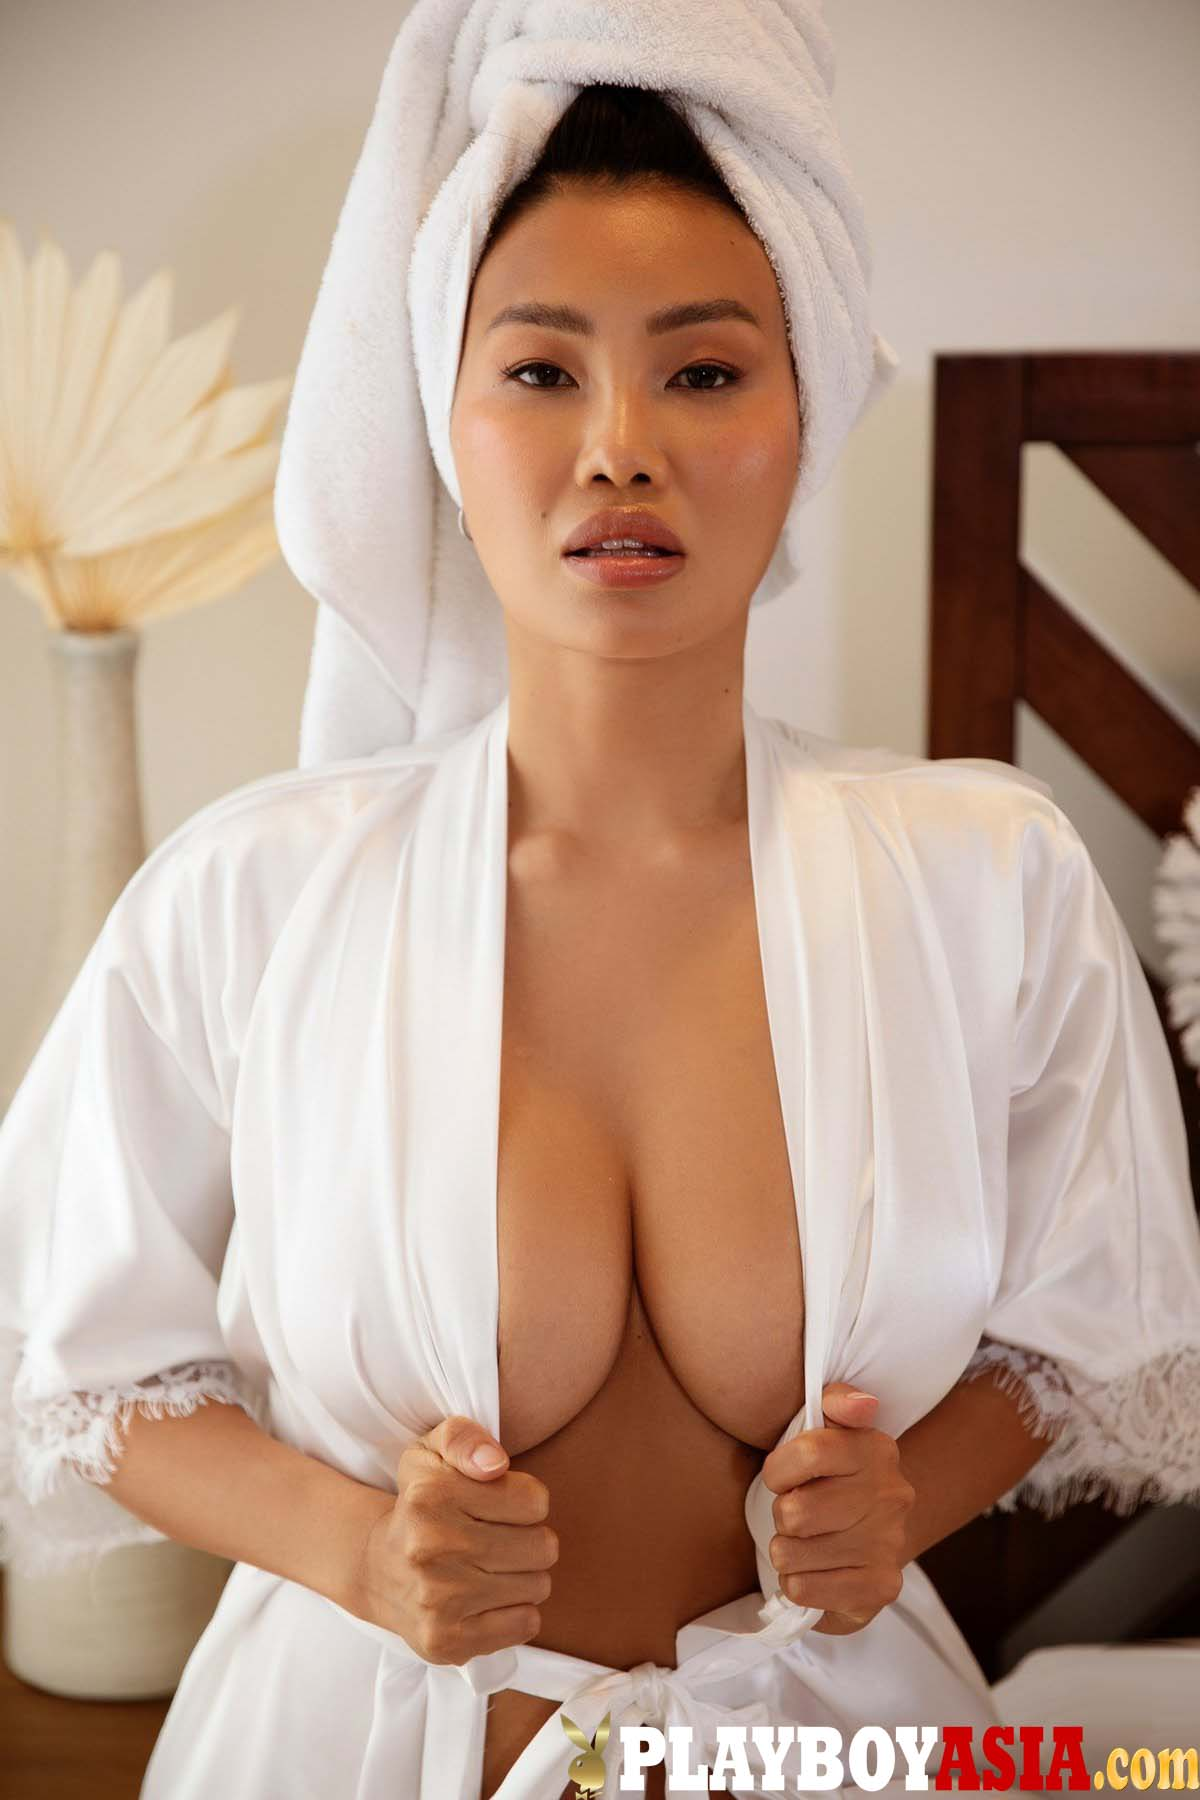 Playboy asian women in The hottest